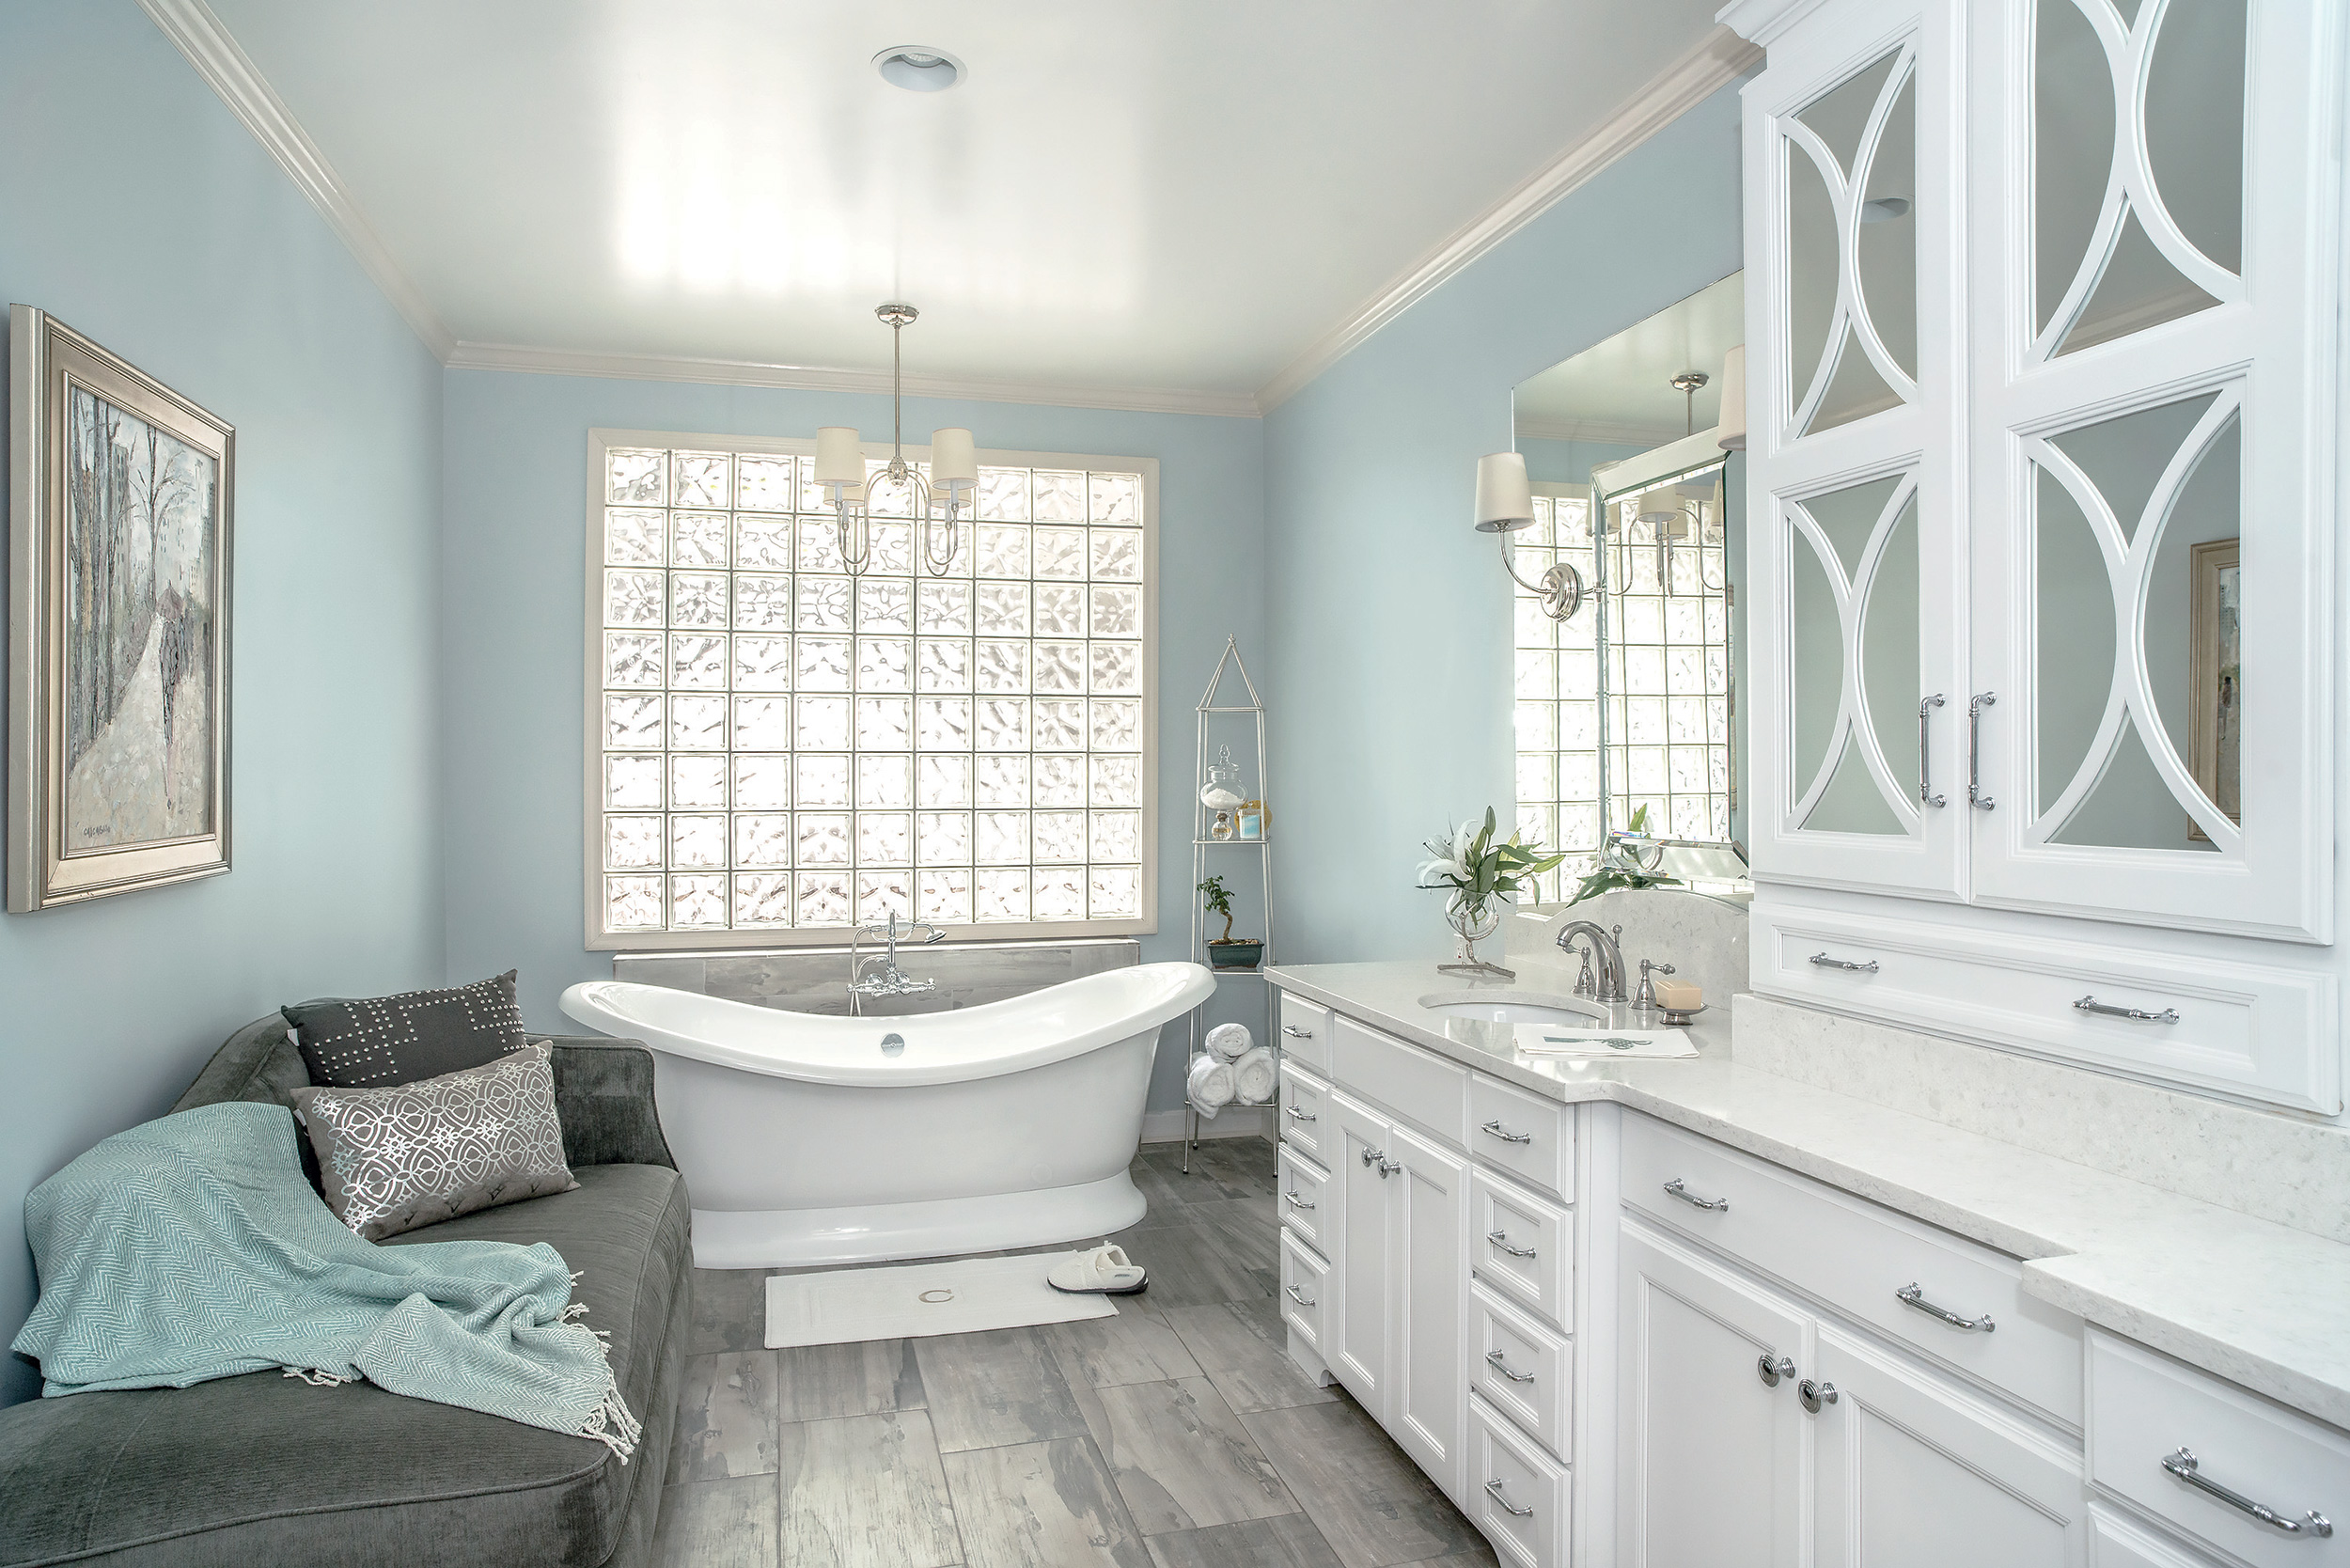 Bathroom trends for 2017 haskell 39 s blog for Bathroom finishes trends